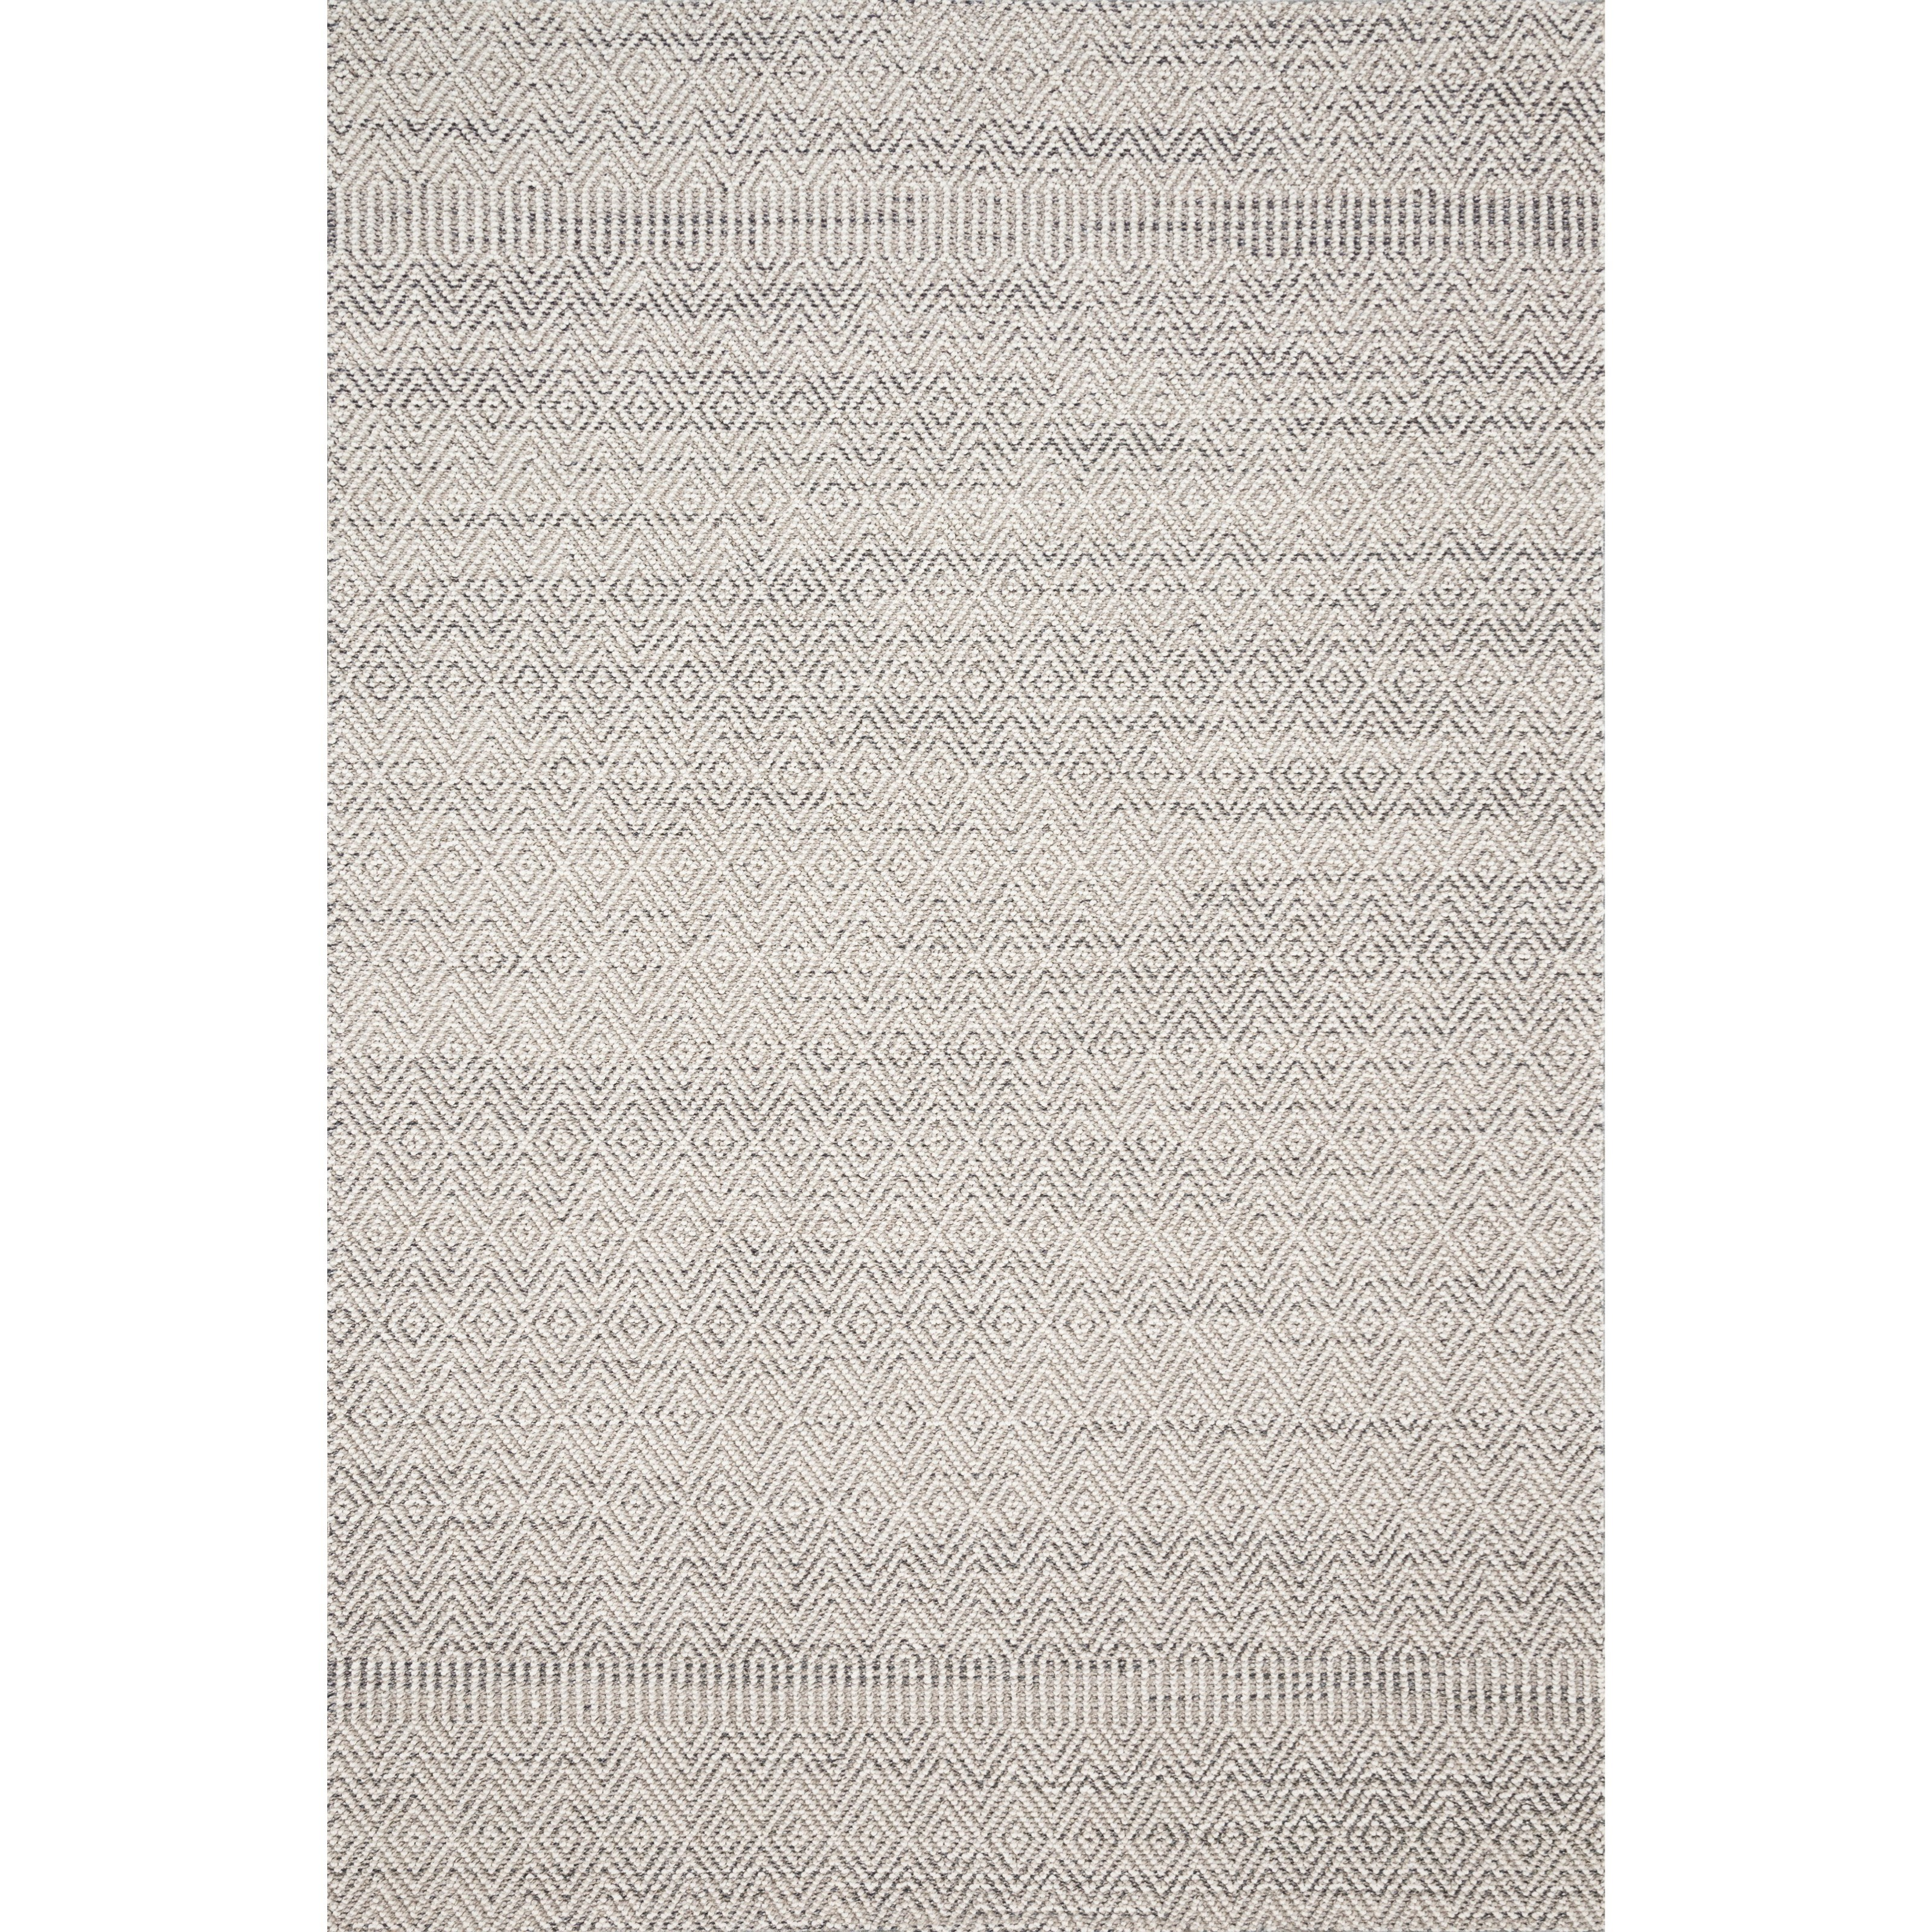 """Cole 1'6"""" x 1'6""""  Grey / Bone Rug by Loloi Rugs at Virginia Furniture Market"""